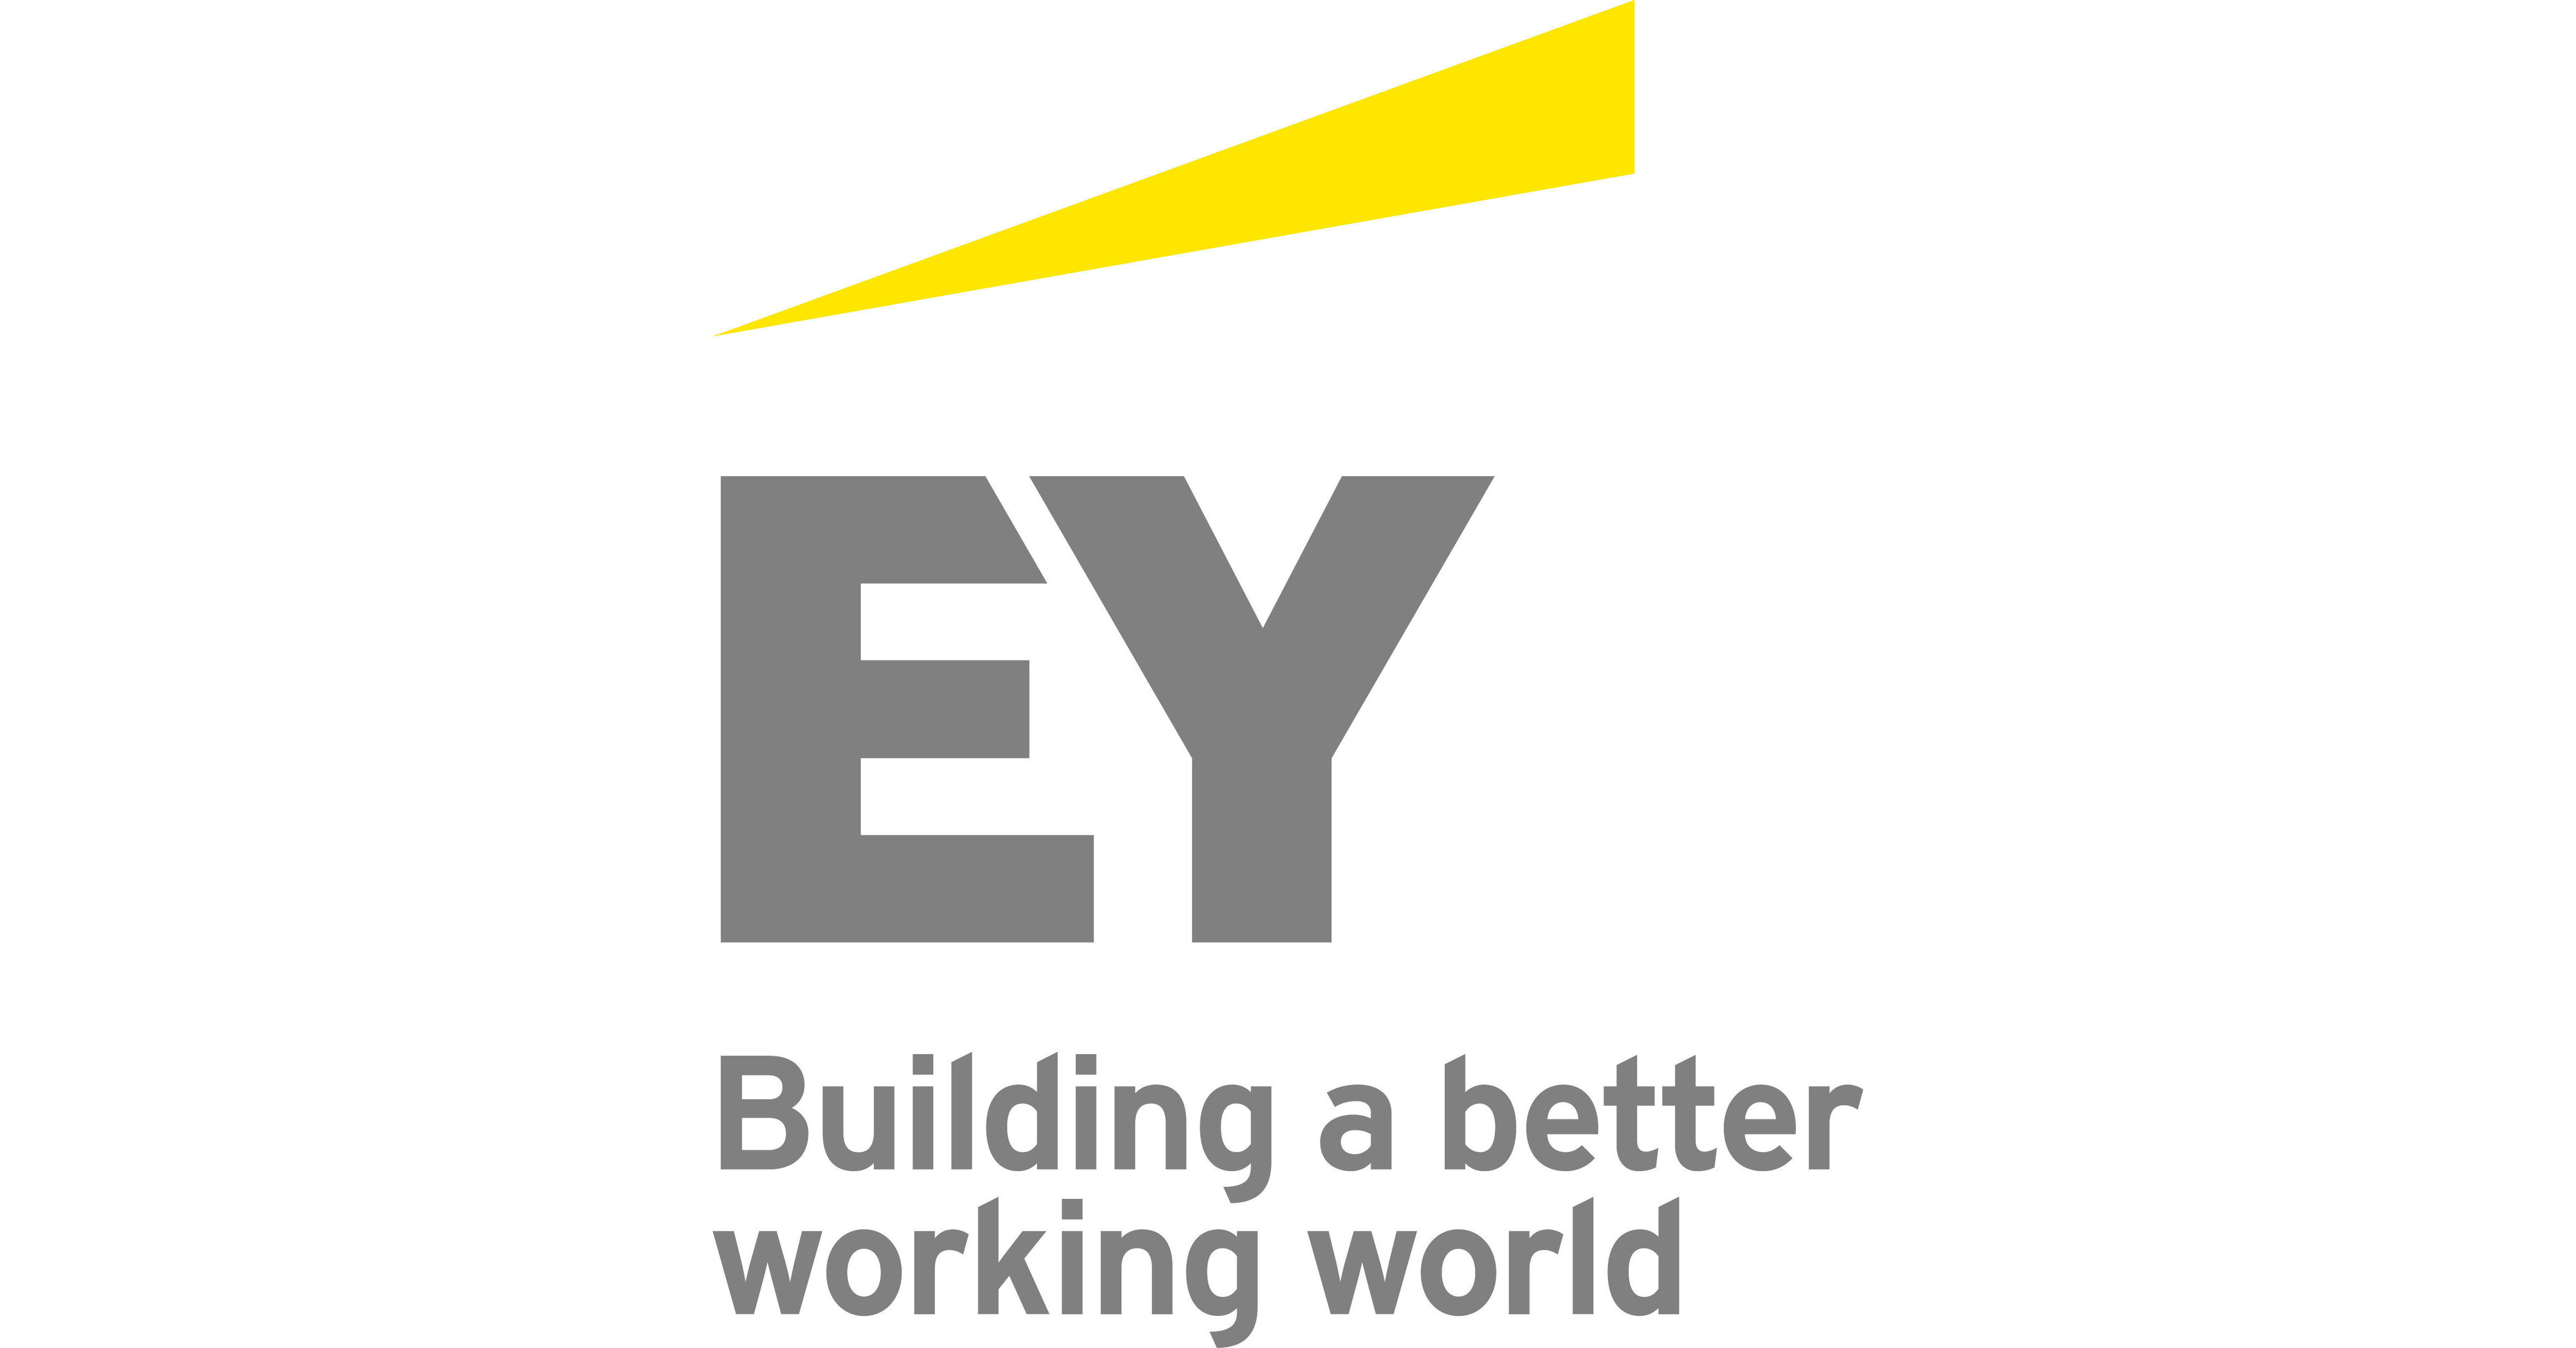 EY Global Banking Outlook 2021: Banks Can Turn Today's Disruption Into Tomorrow's Transformation